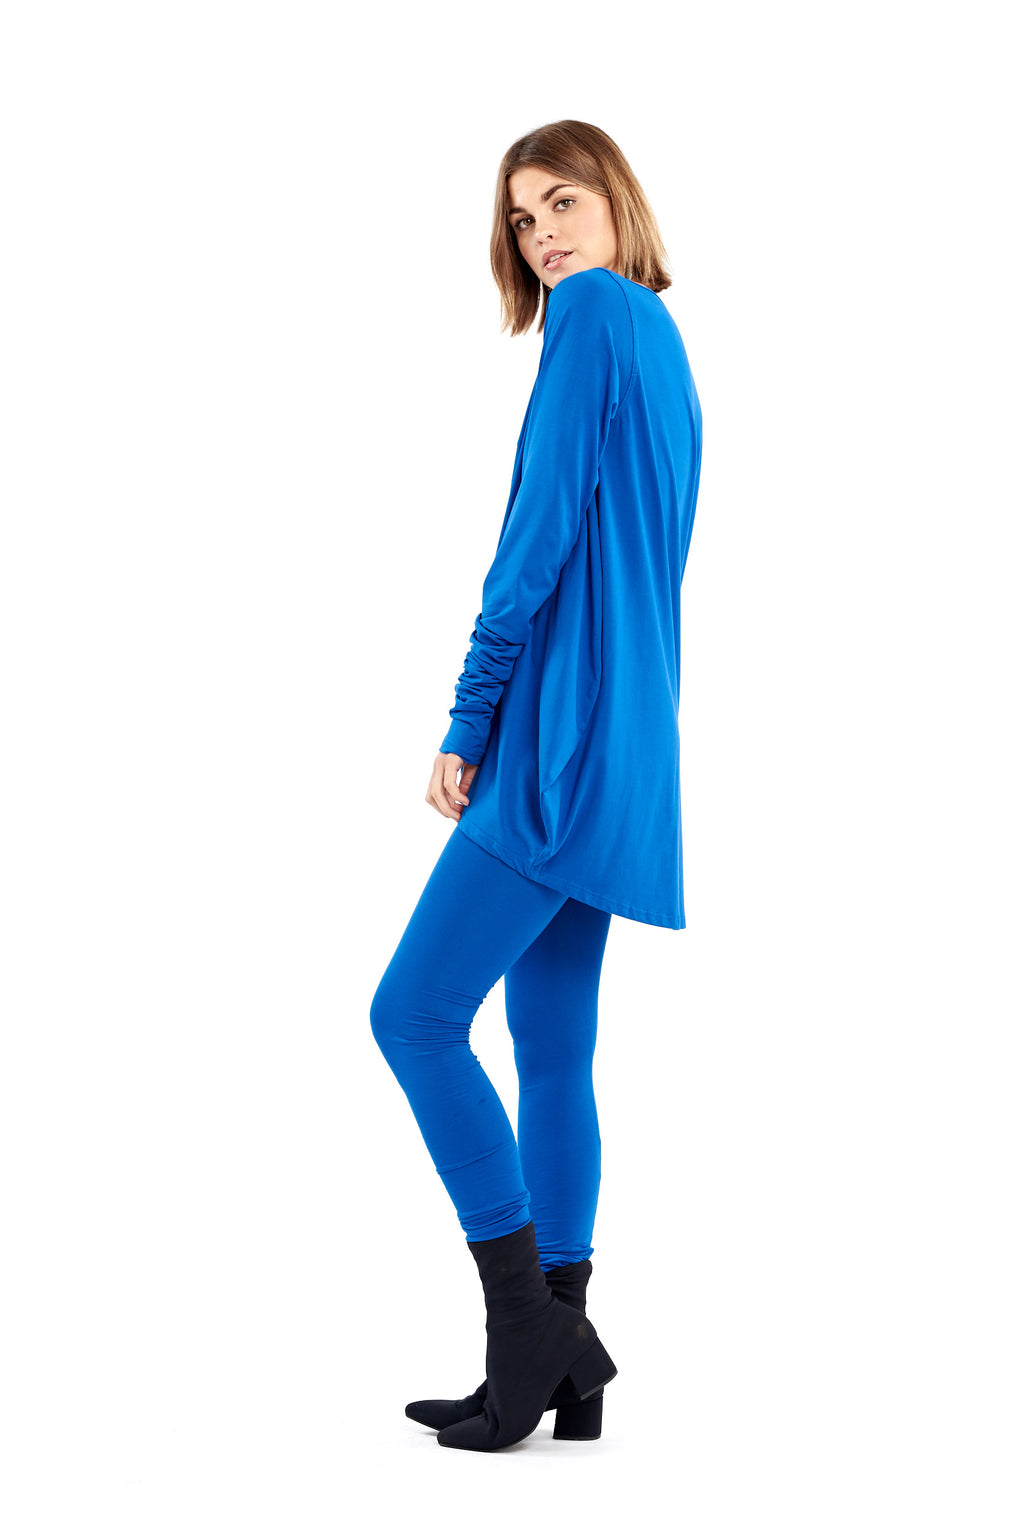 Organic Bamboo Dutch Top Royal Blue - MUDRA